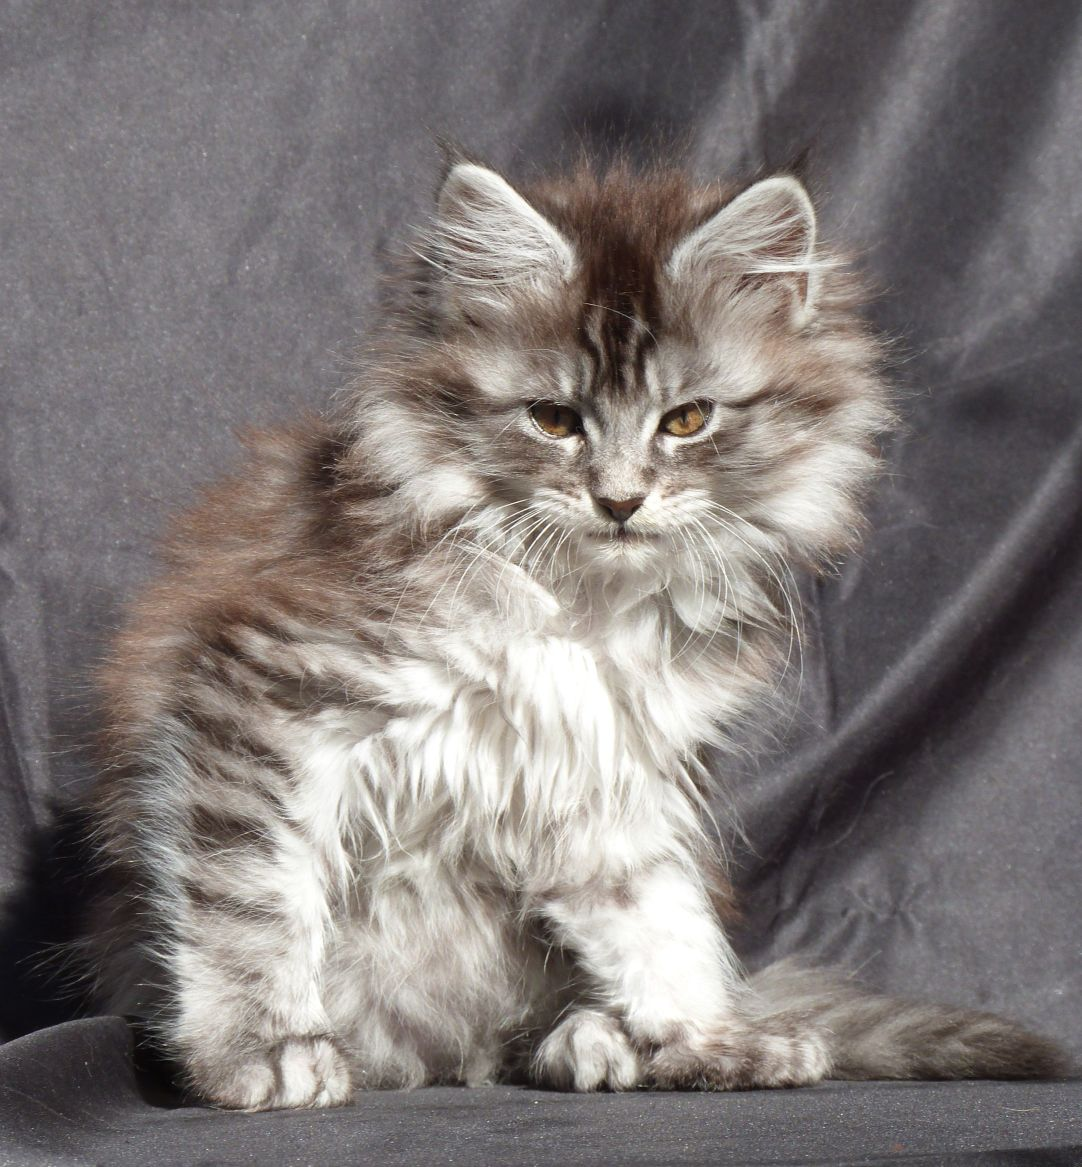 Chatterie Coon Toujours, R'Pookie de Coon Toujours, chaton femelle maine coon, 11 semaines, black silver mackerel tabby